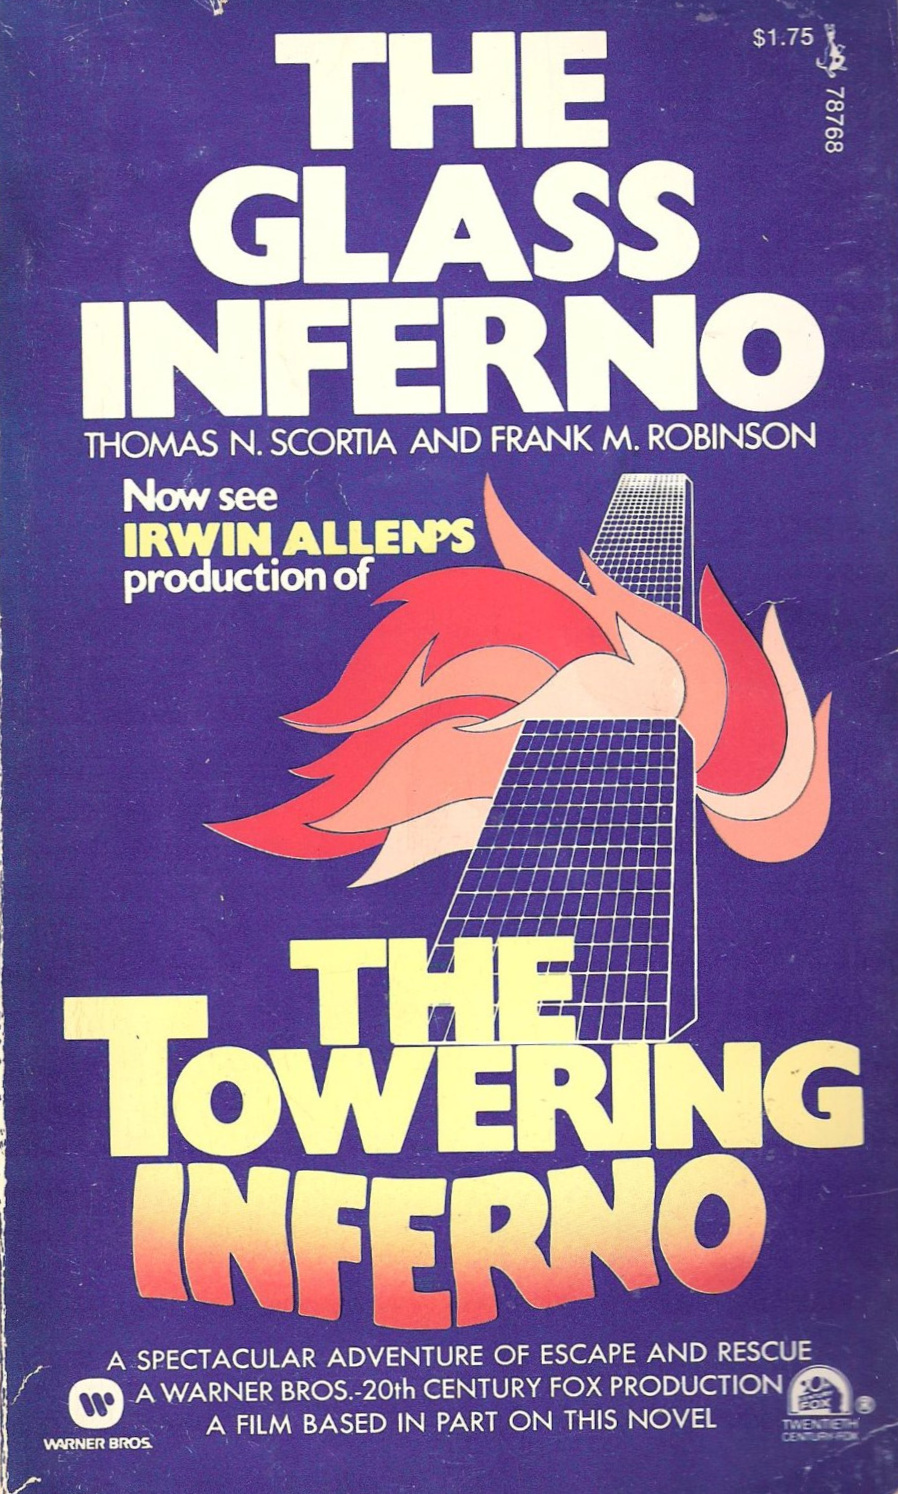 The Glass Inferno  (1974), movie tie-in cover